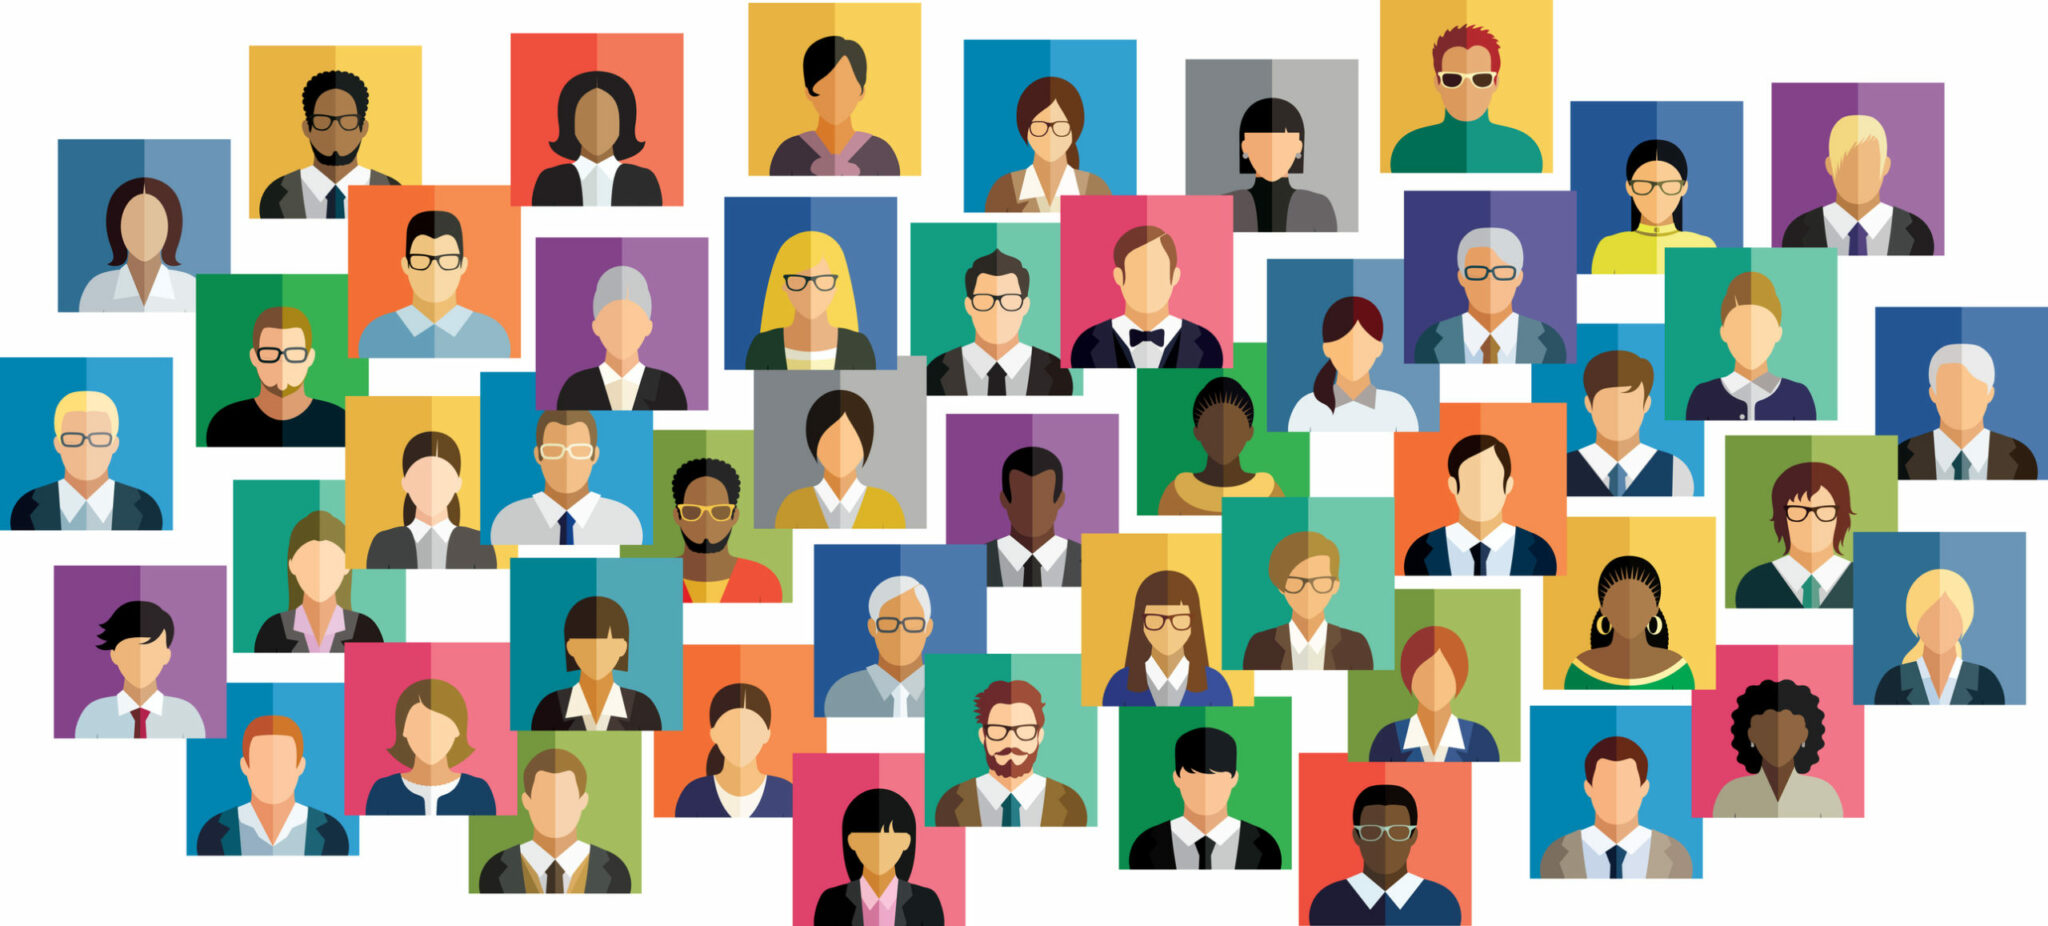 Diversity and Inclusion: Best Practices for Associations